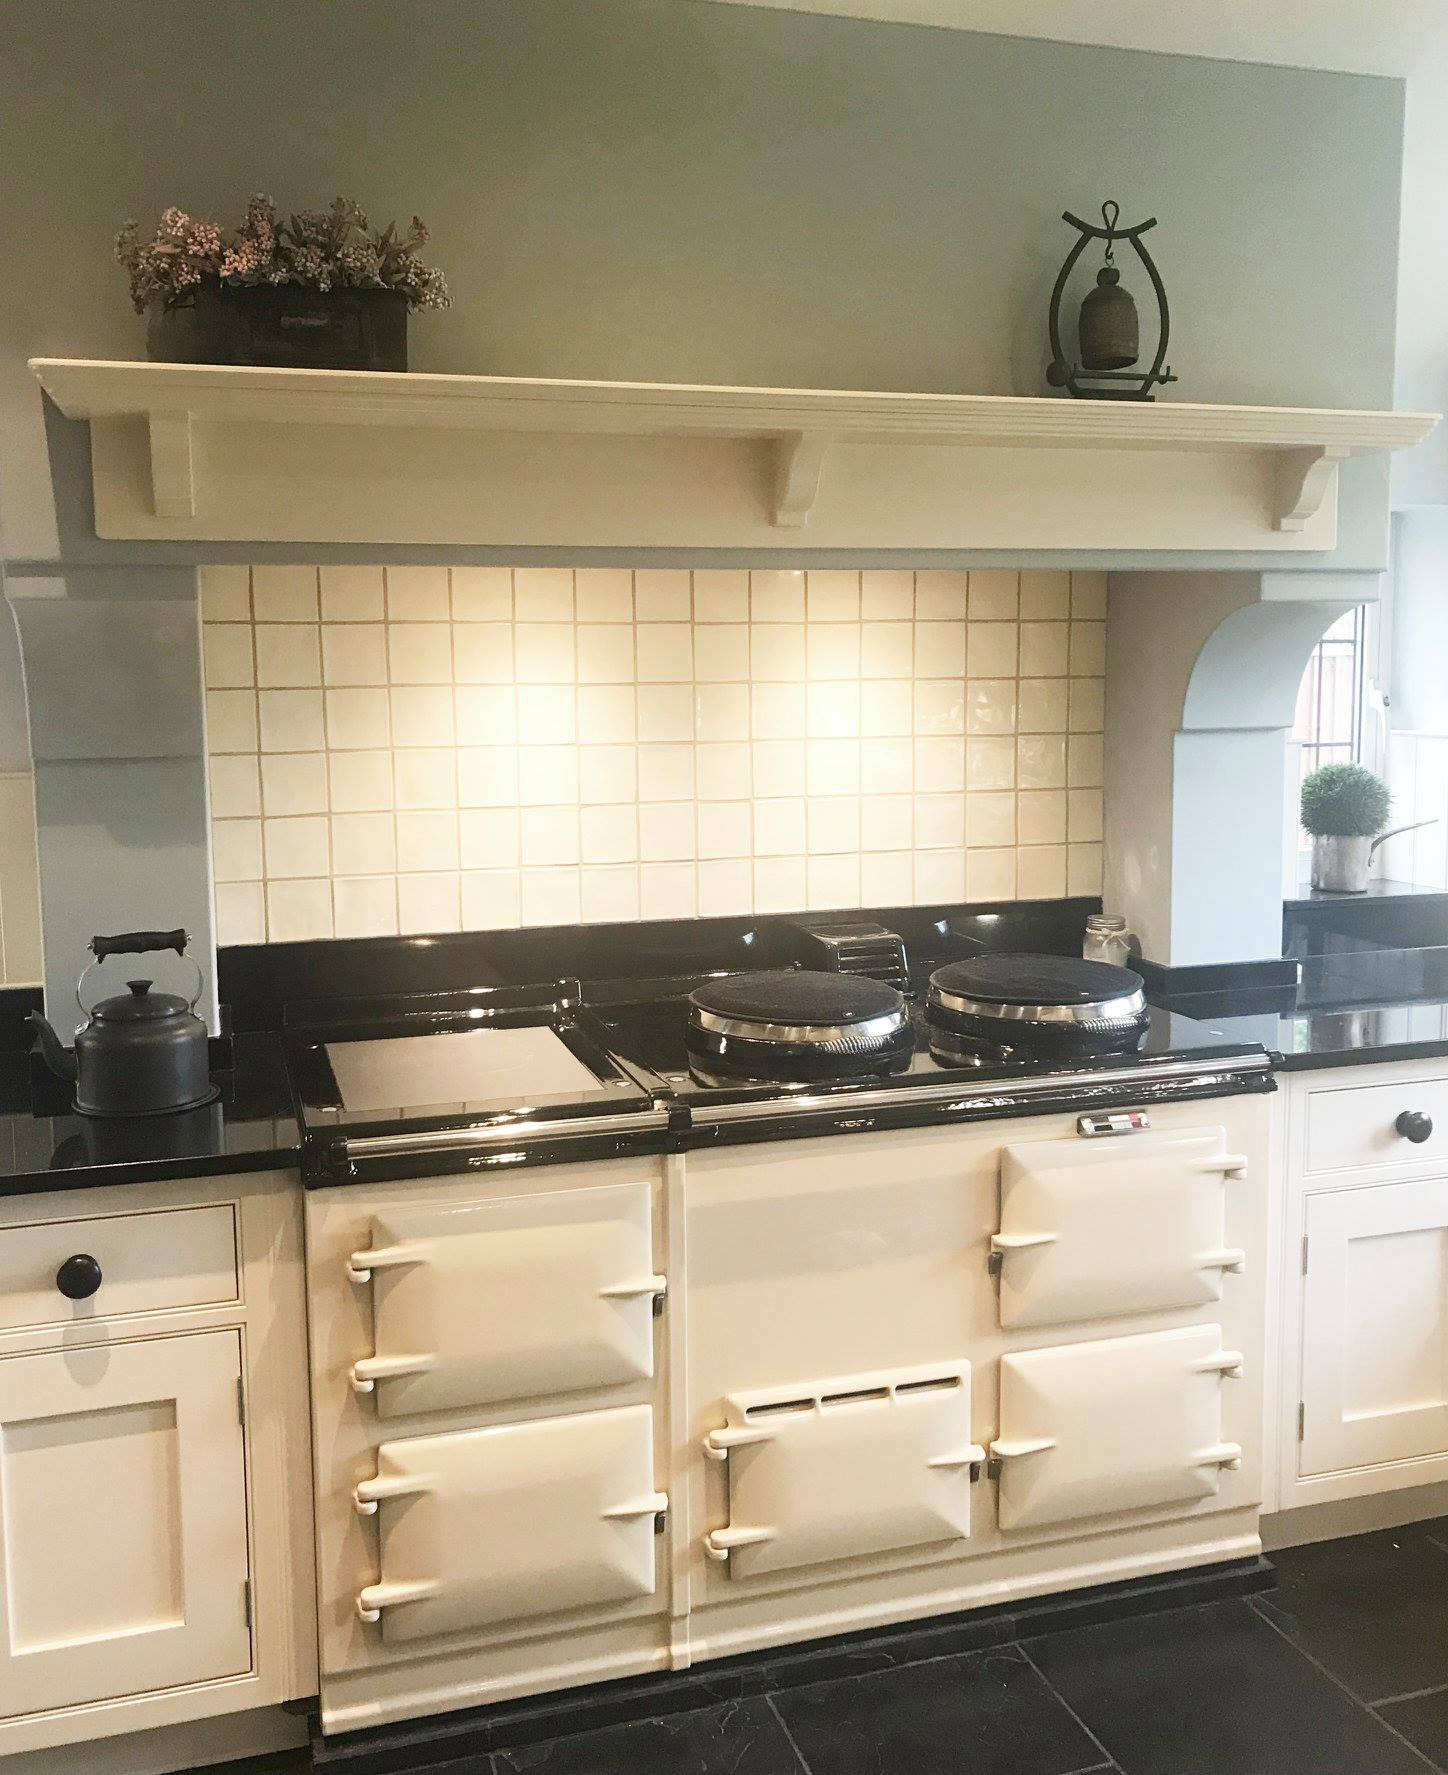 Cream 4 oven Aga range cooker